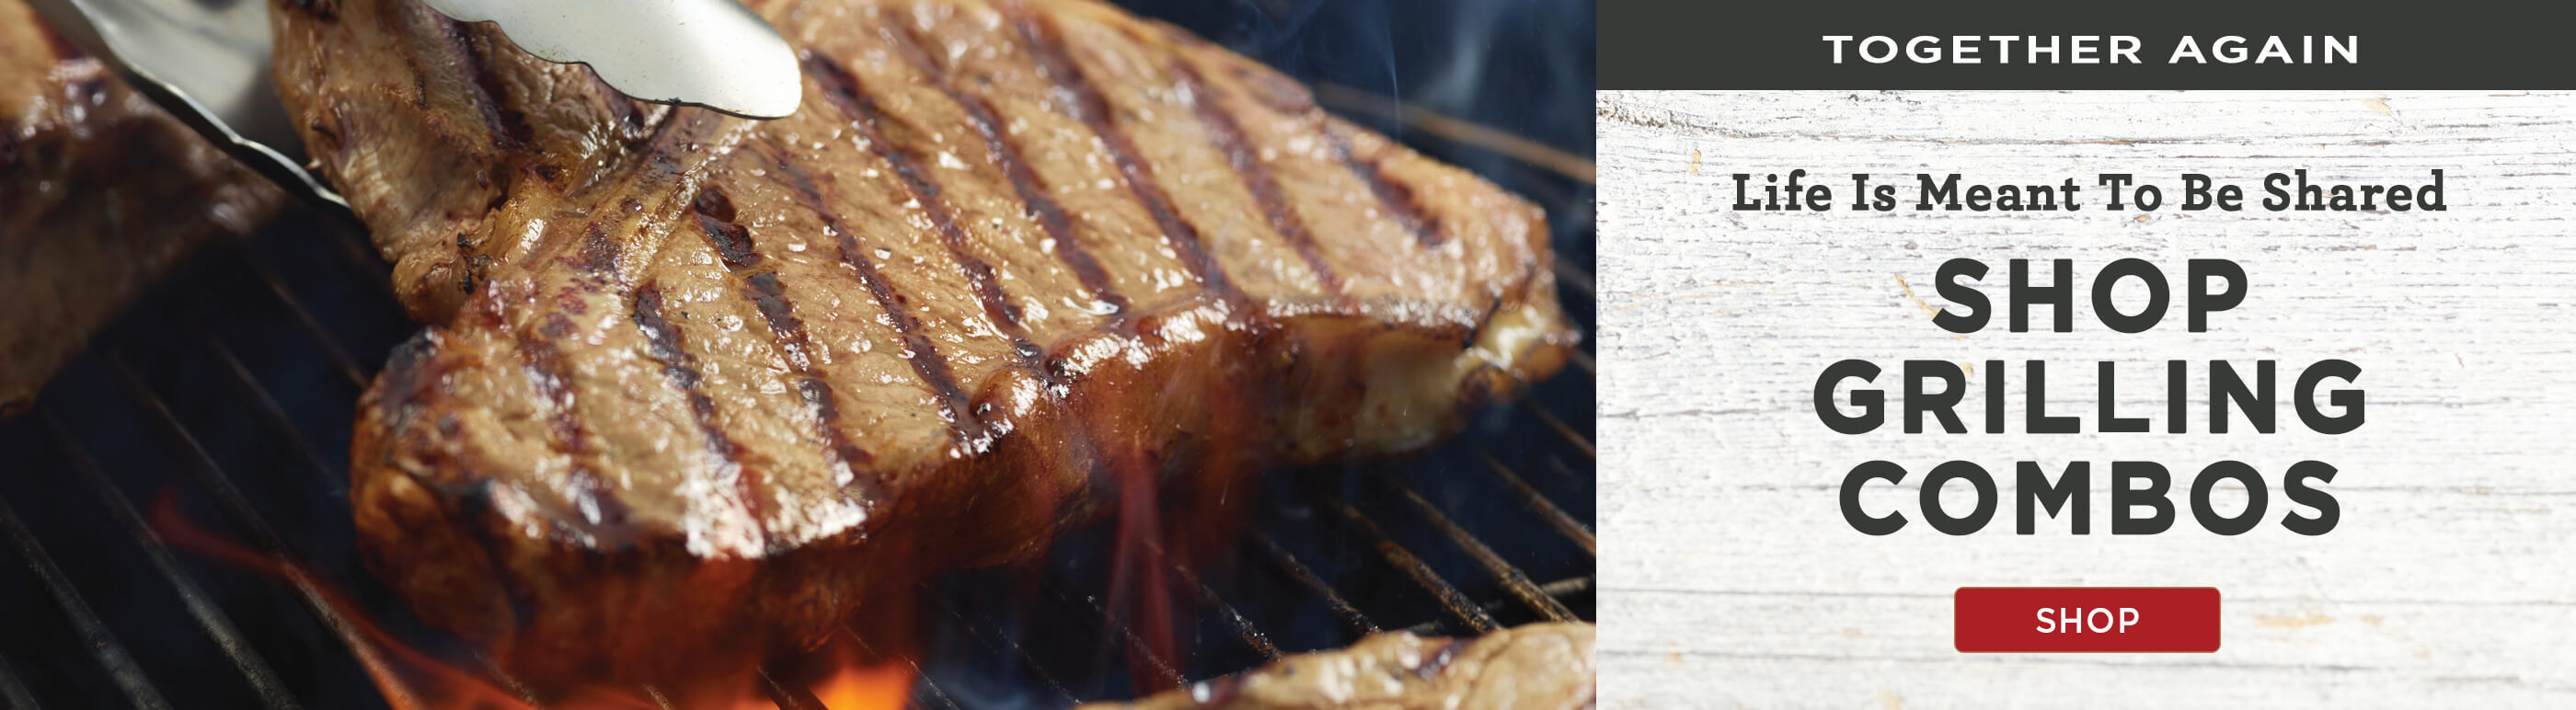 Life is meant to be shared. Shop grilling combos.